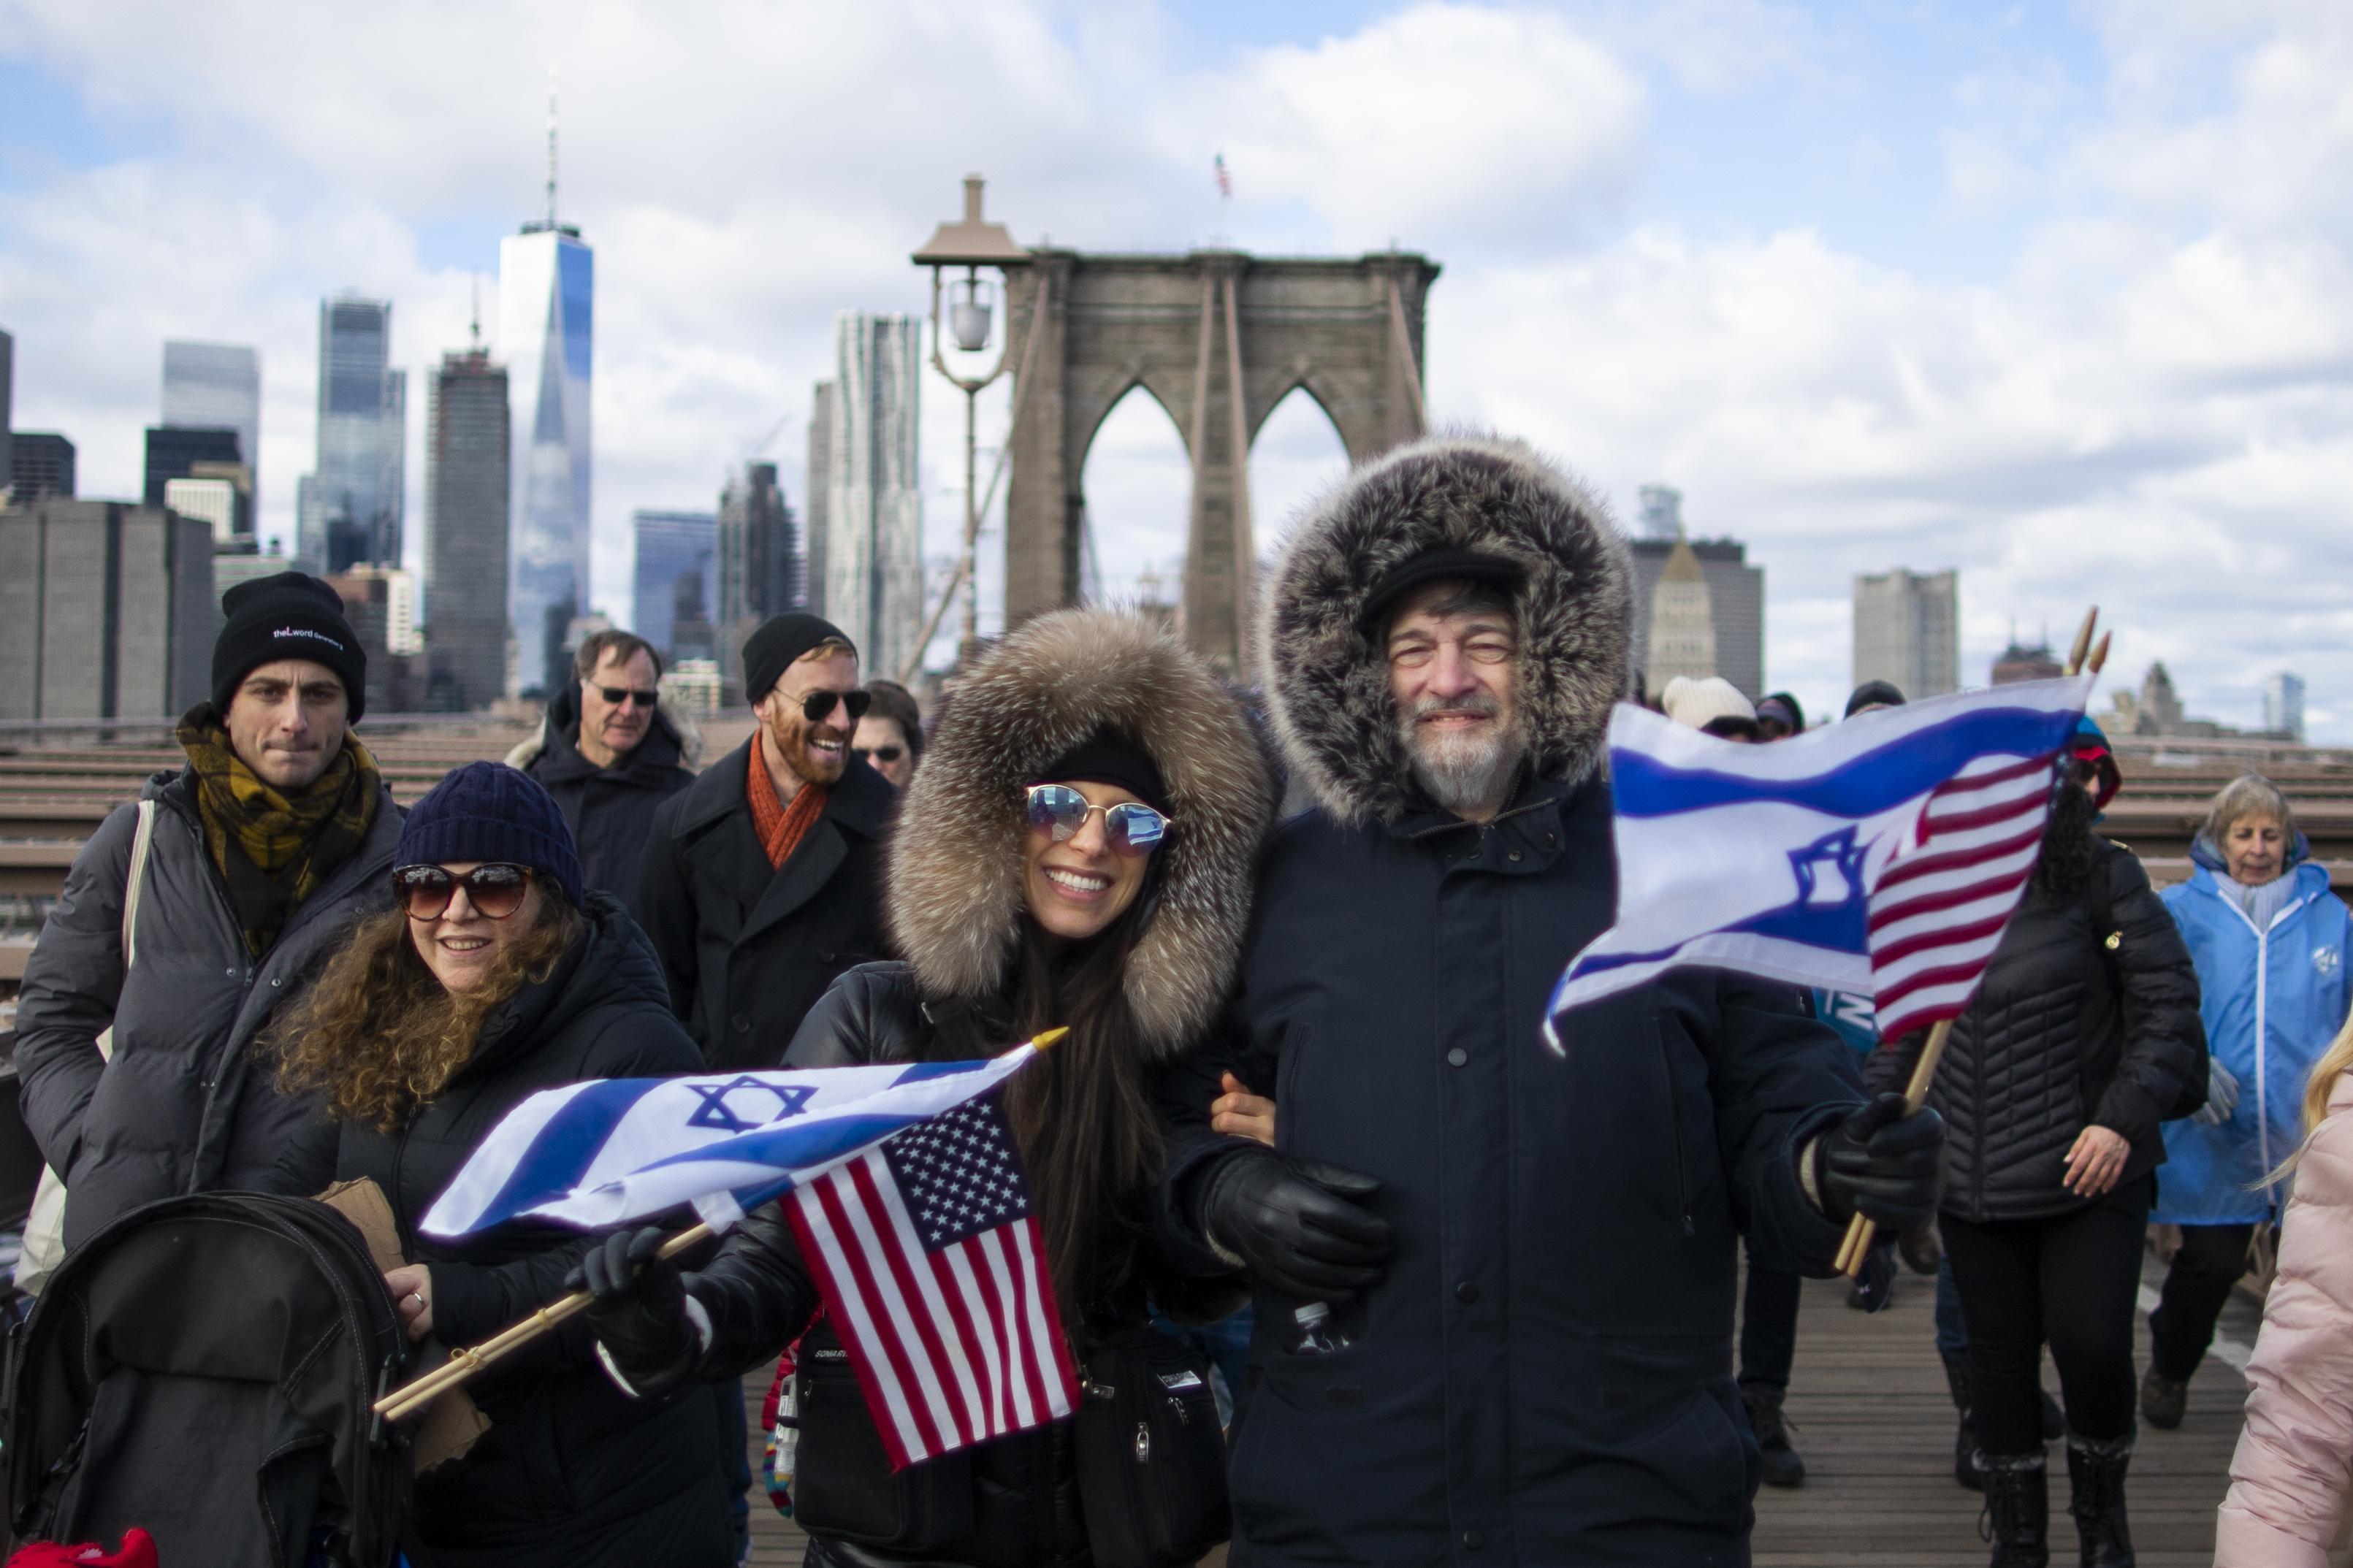 Solidarity march against anti-Semitism, acts of hate